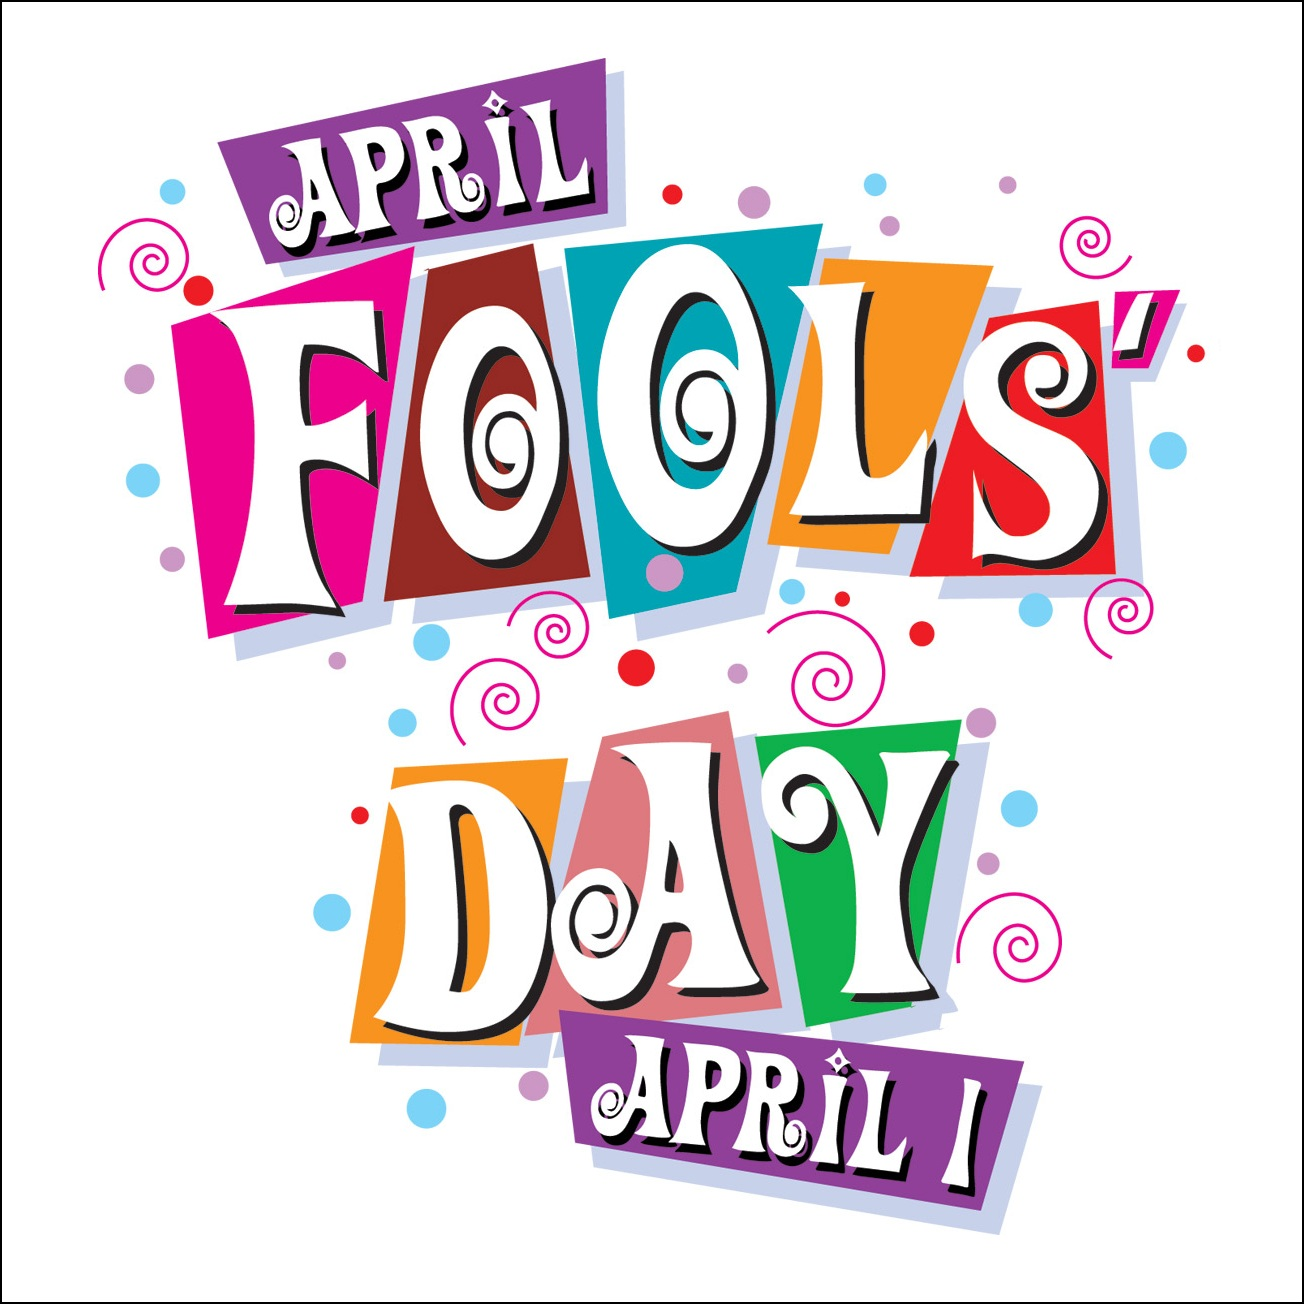 April fools day clipart for free vector free Funny April Fools Day Clip Art – Clipart Free Download vector free